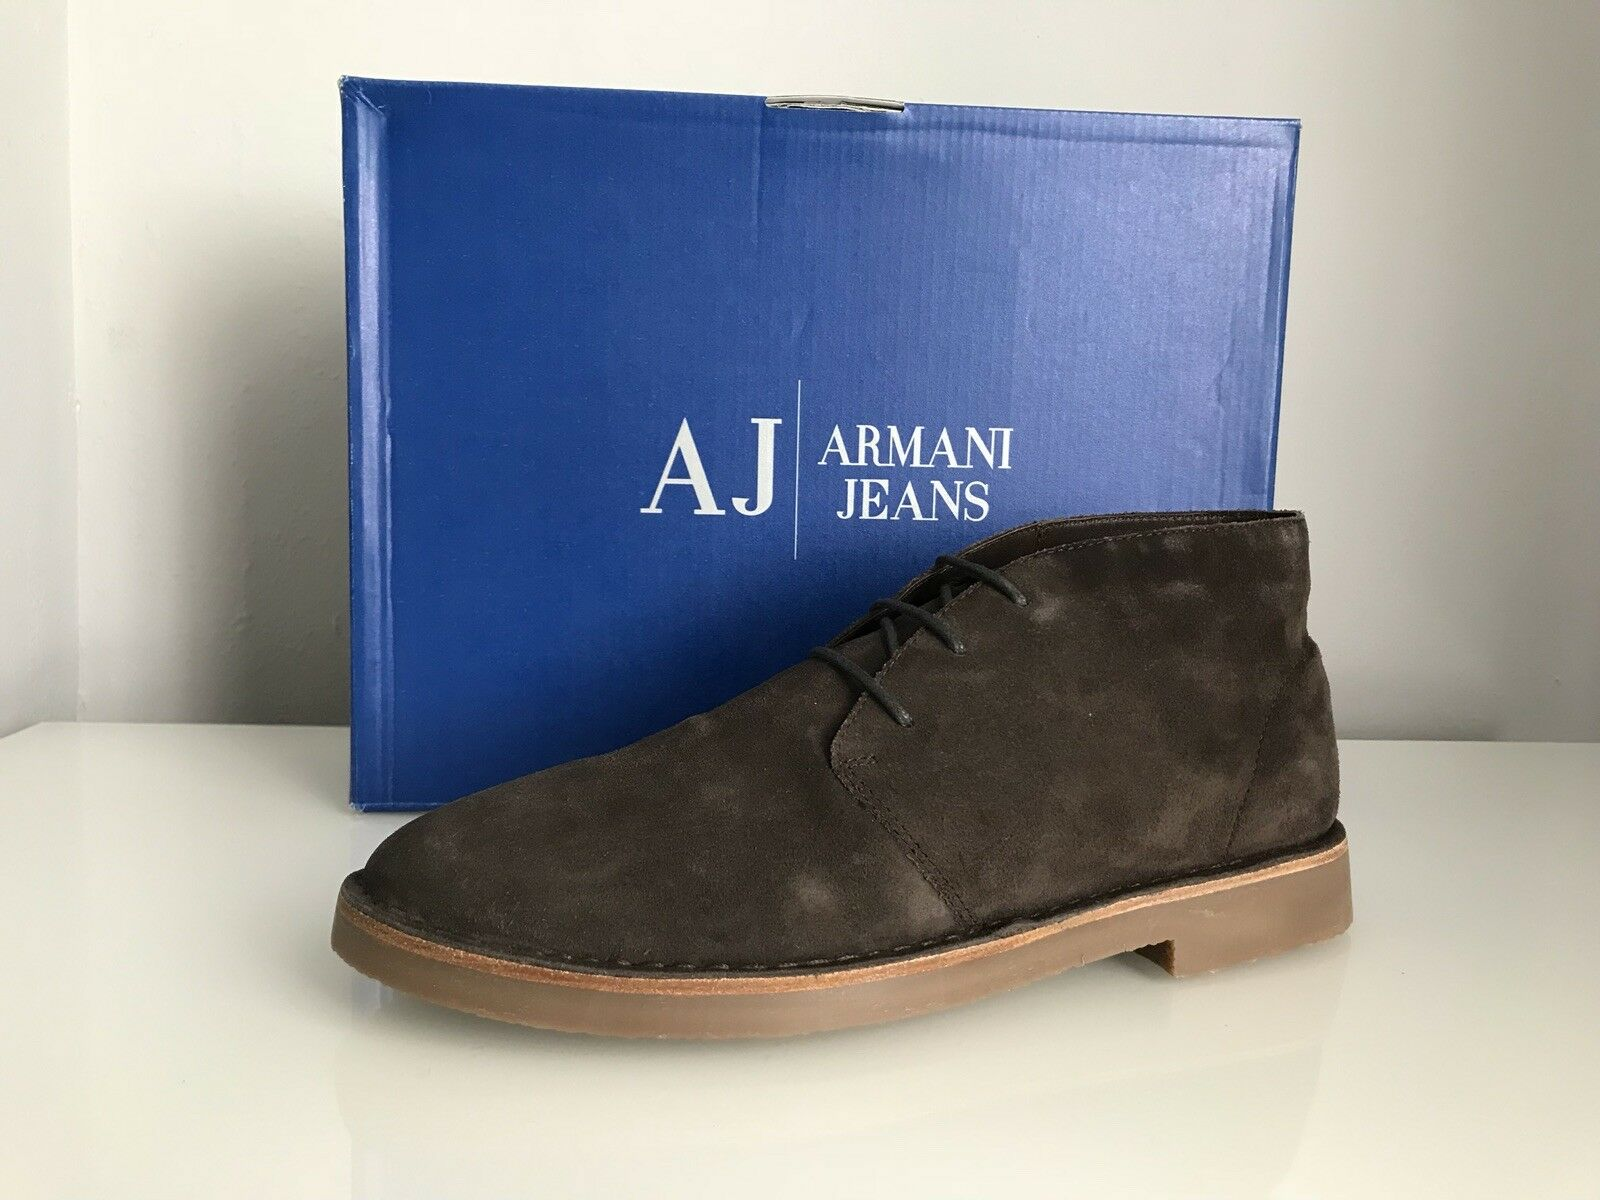 Armani Jeans Desert Lace Up Ankle Stiefel Stiefel Ankle In Braun Suede 935056 / CC510 Größe UK 9 379c72